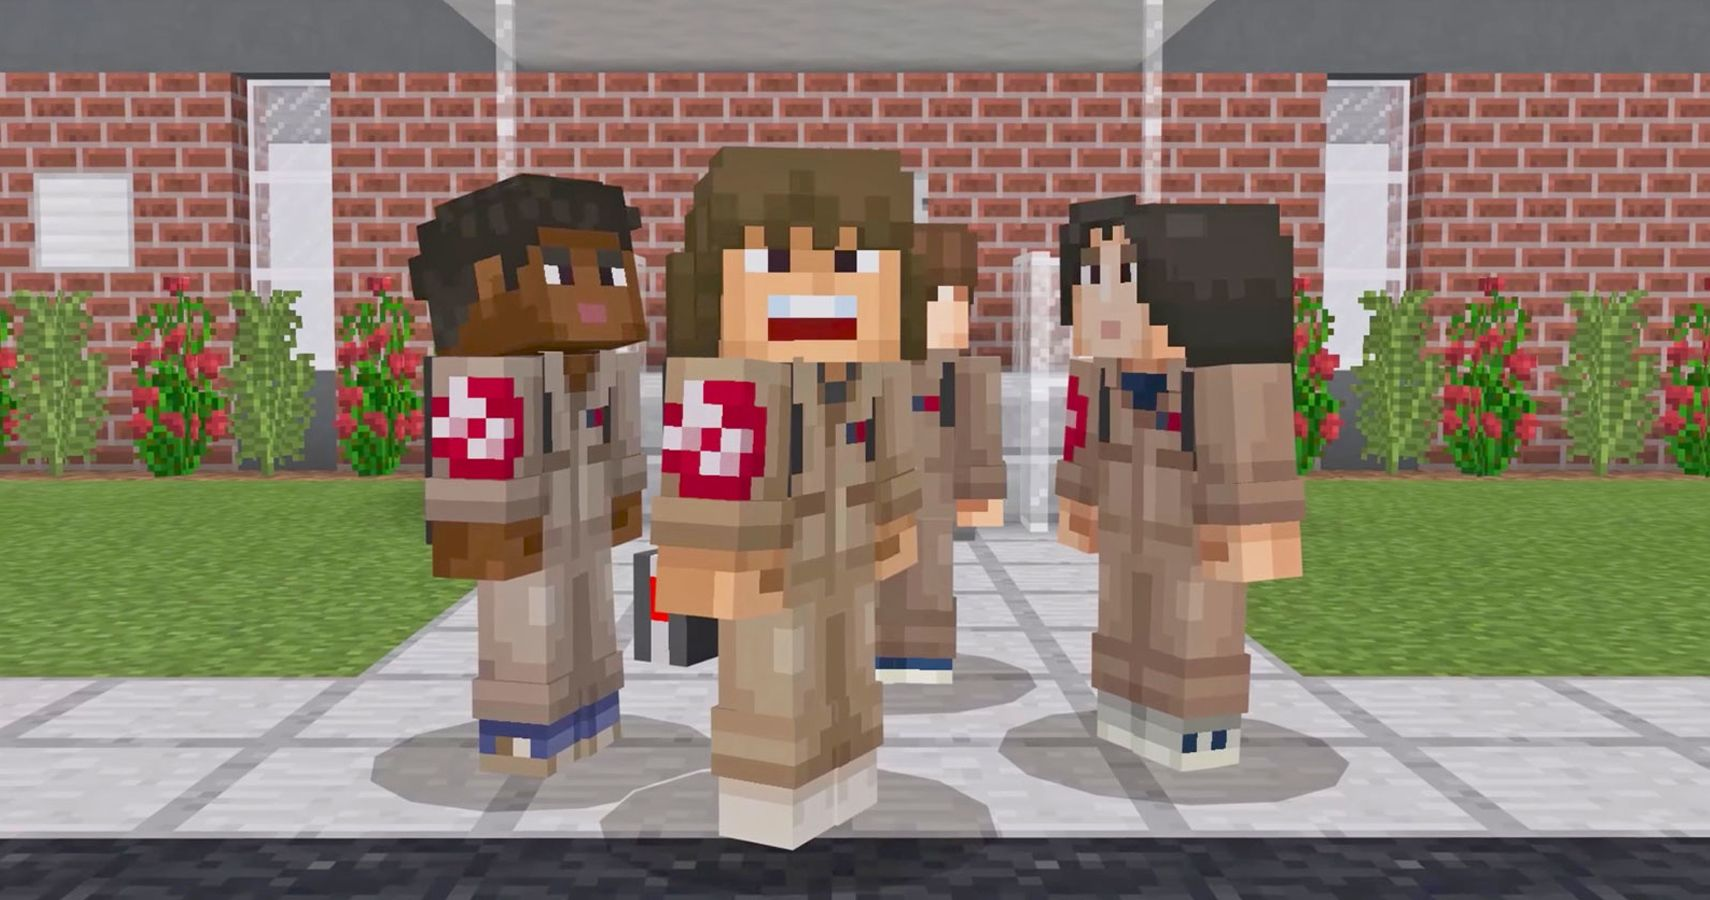 25 Things Even True Fans Didn't Realize They Could Do In Minecraft